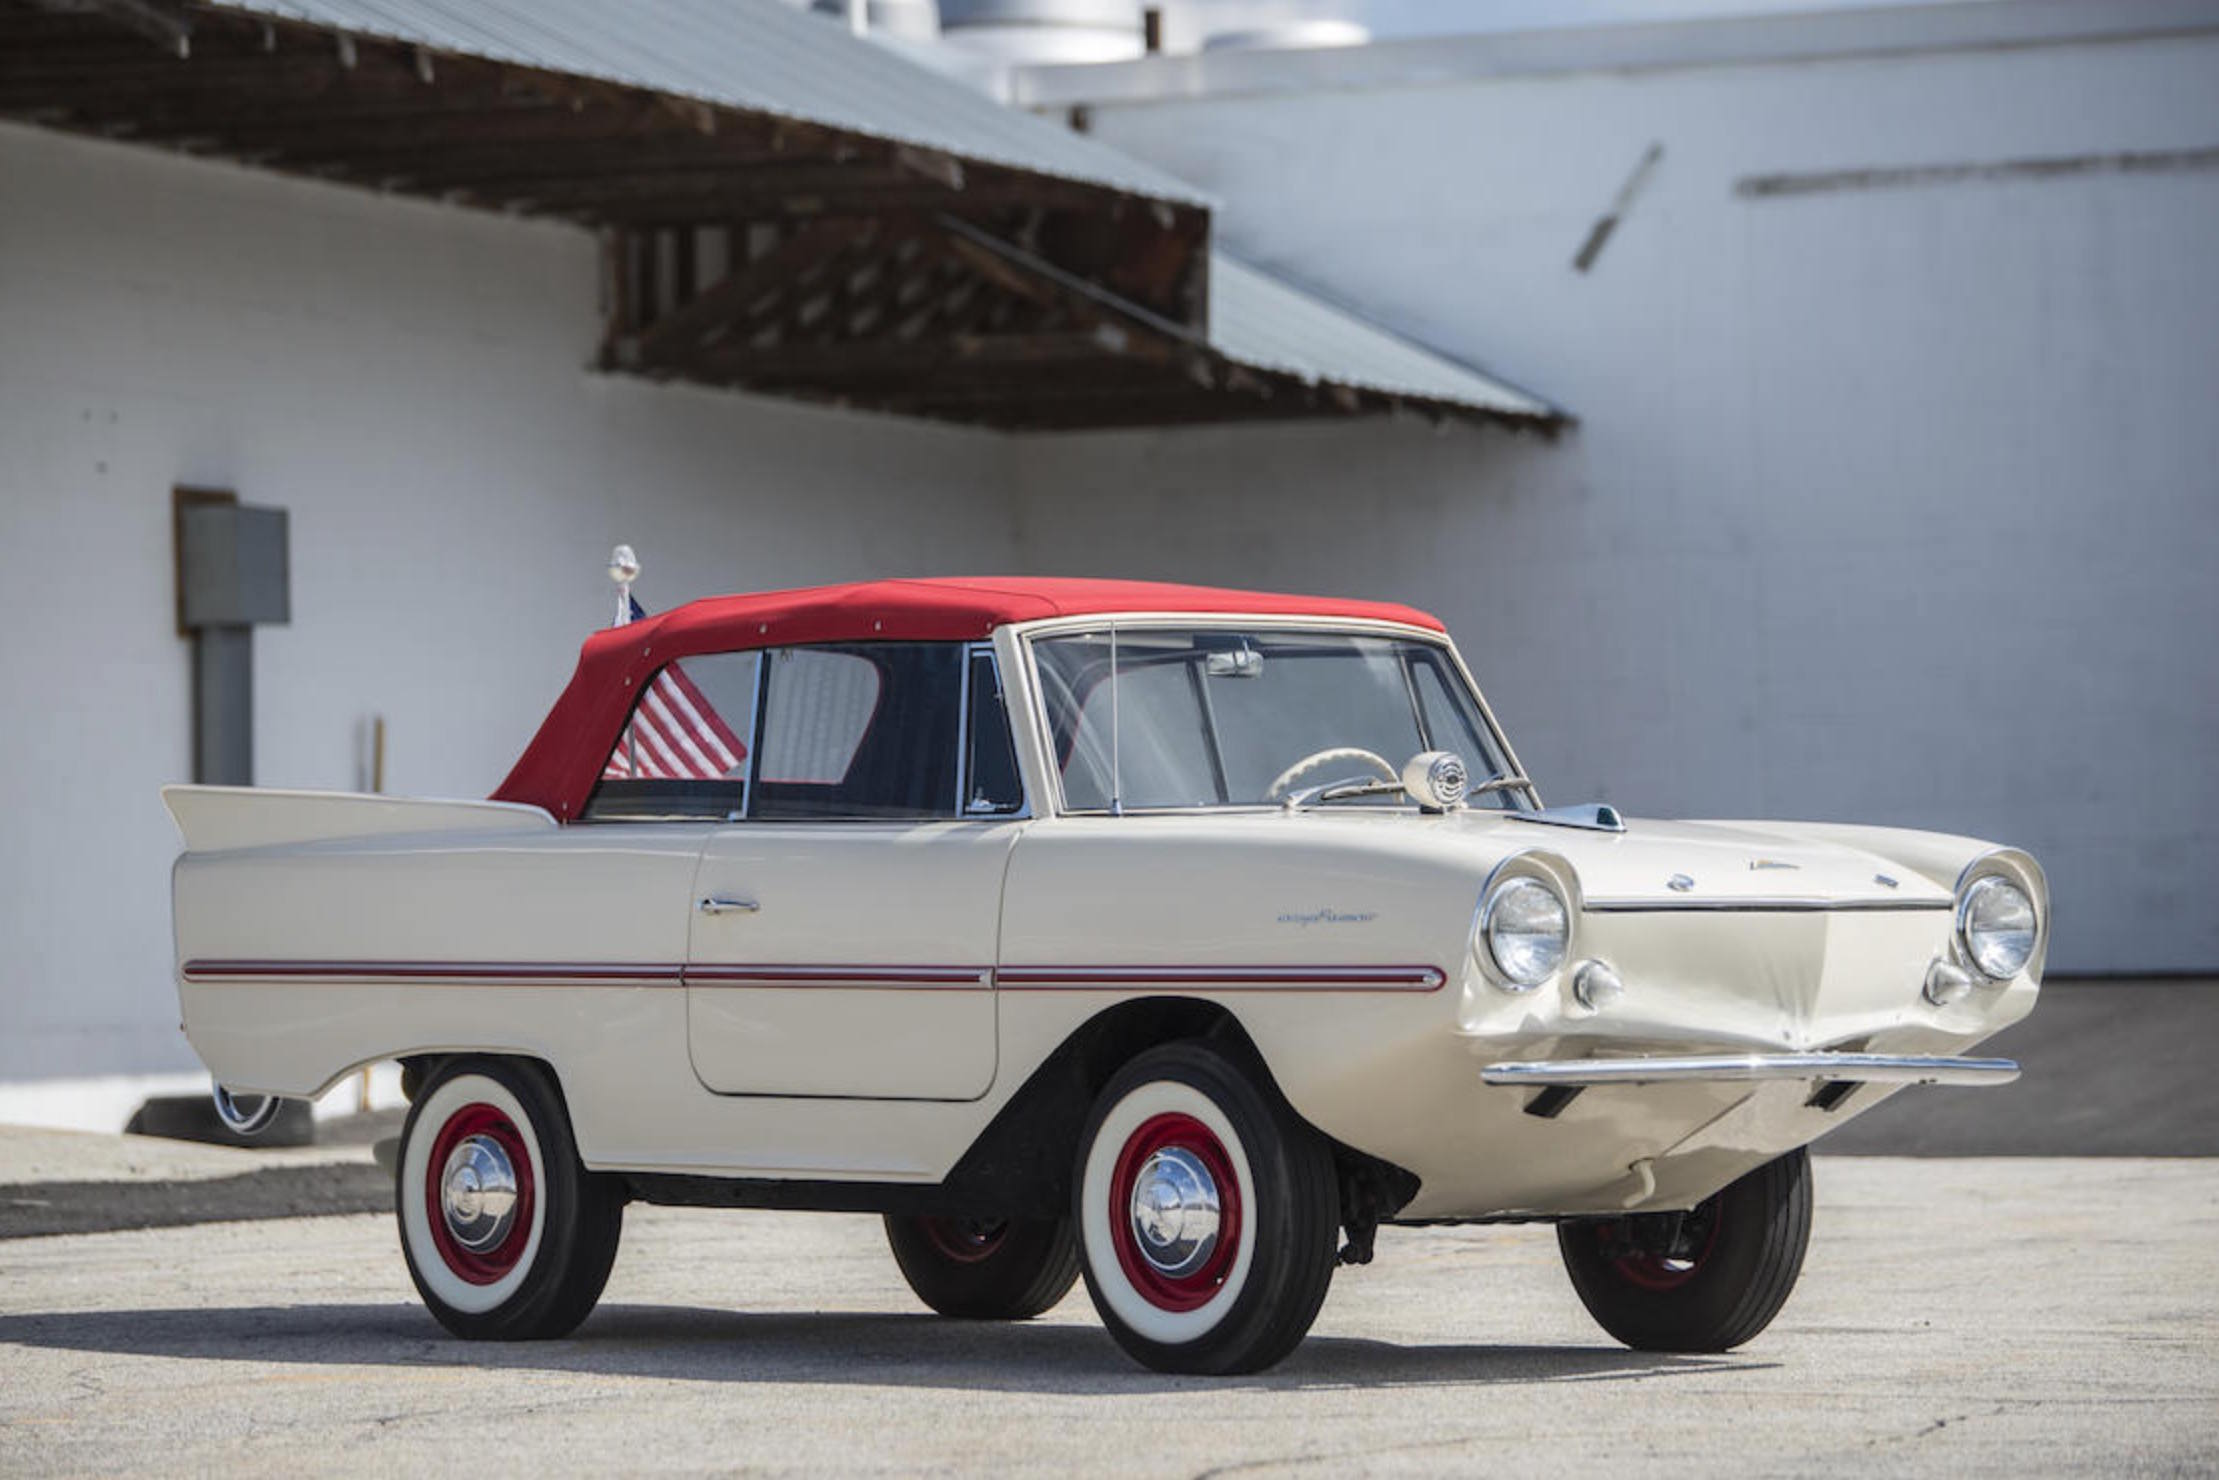 Amphicar-Model-770-Amphibious-Car-11.jpg